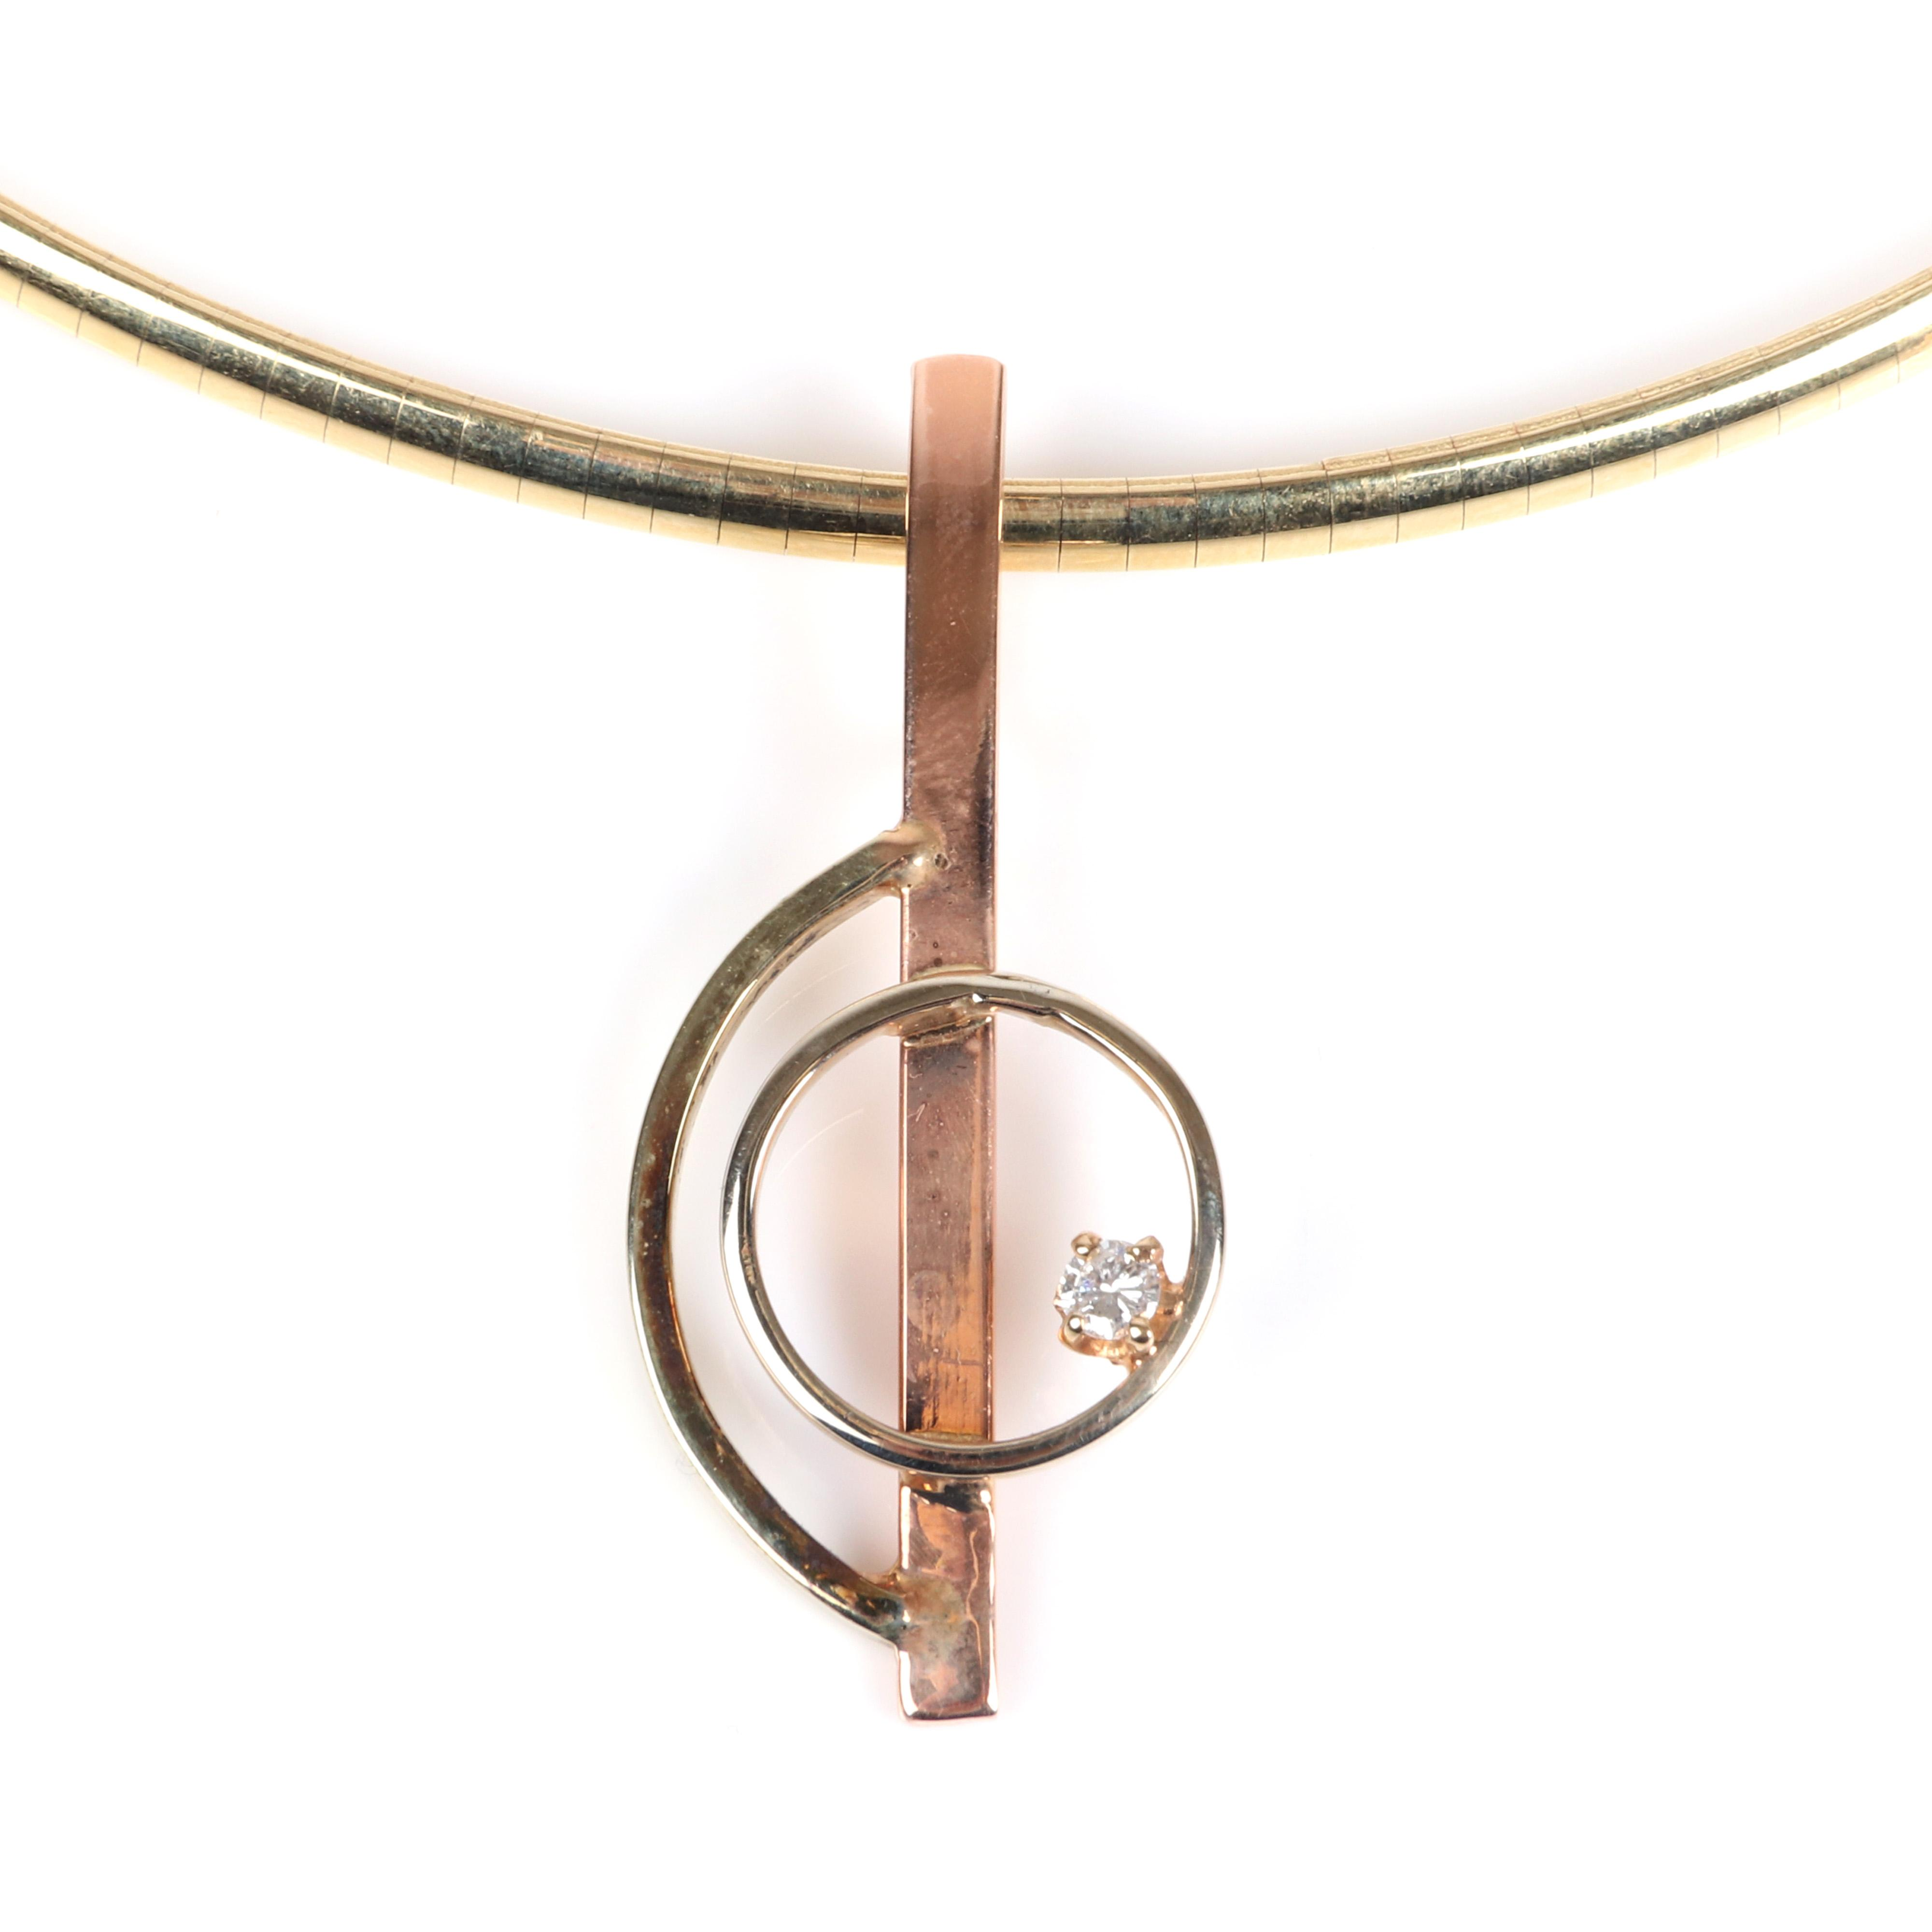 "Stamped 14K rose and yellow gold and diamond minimalist geometric pendant on 14K 3mm omega choker necklace. 16""L , 1 3/4""H x 1""W (pendant) 13.80 dwt."